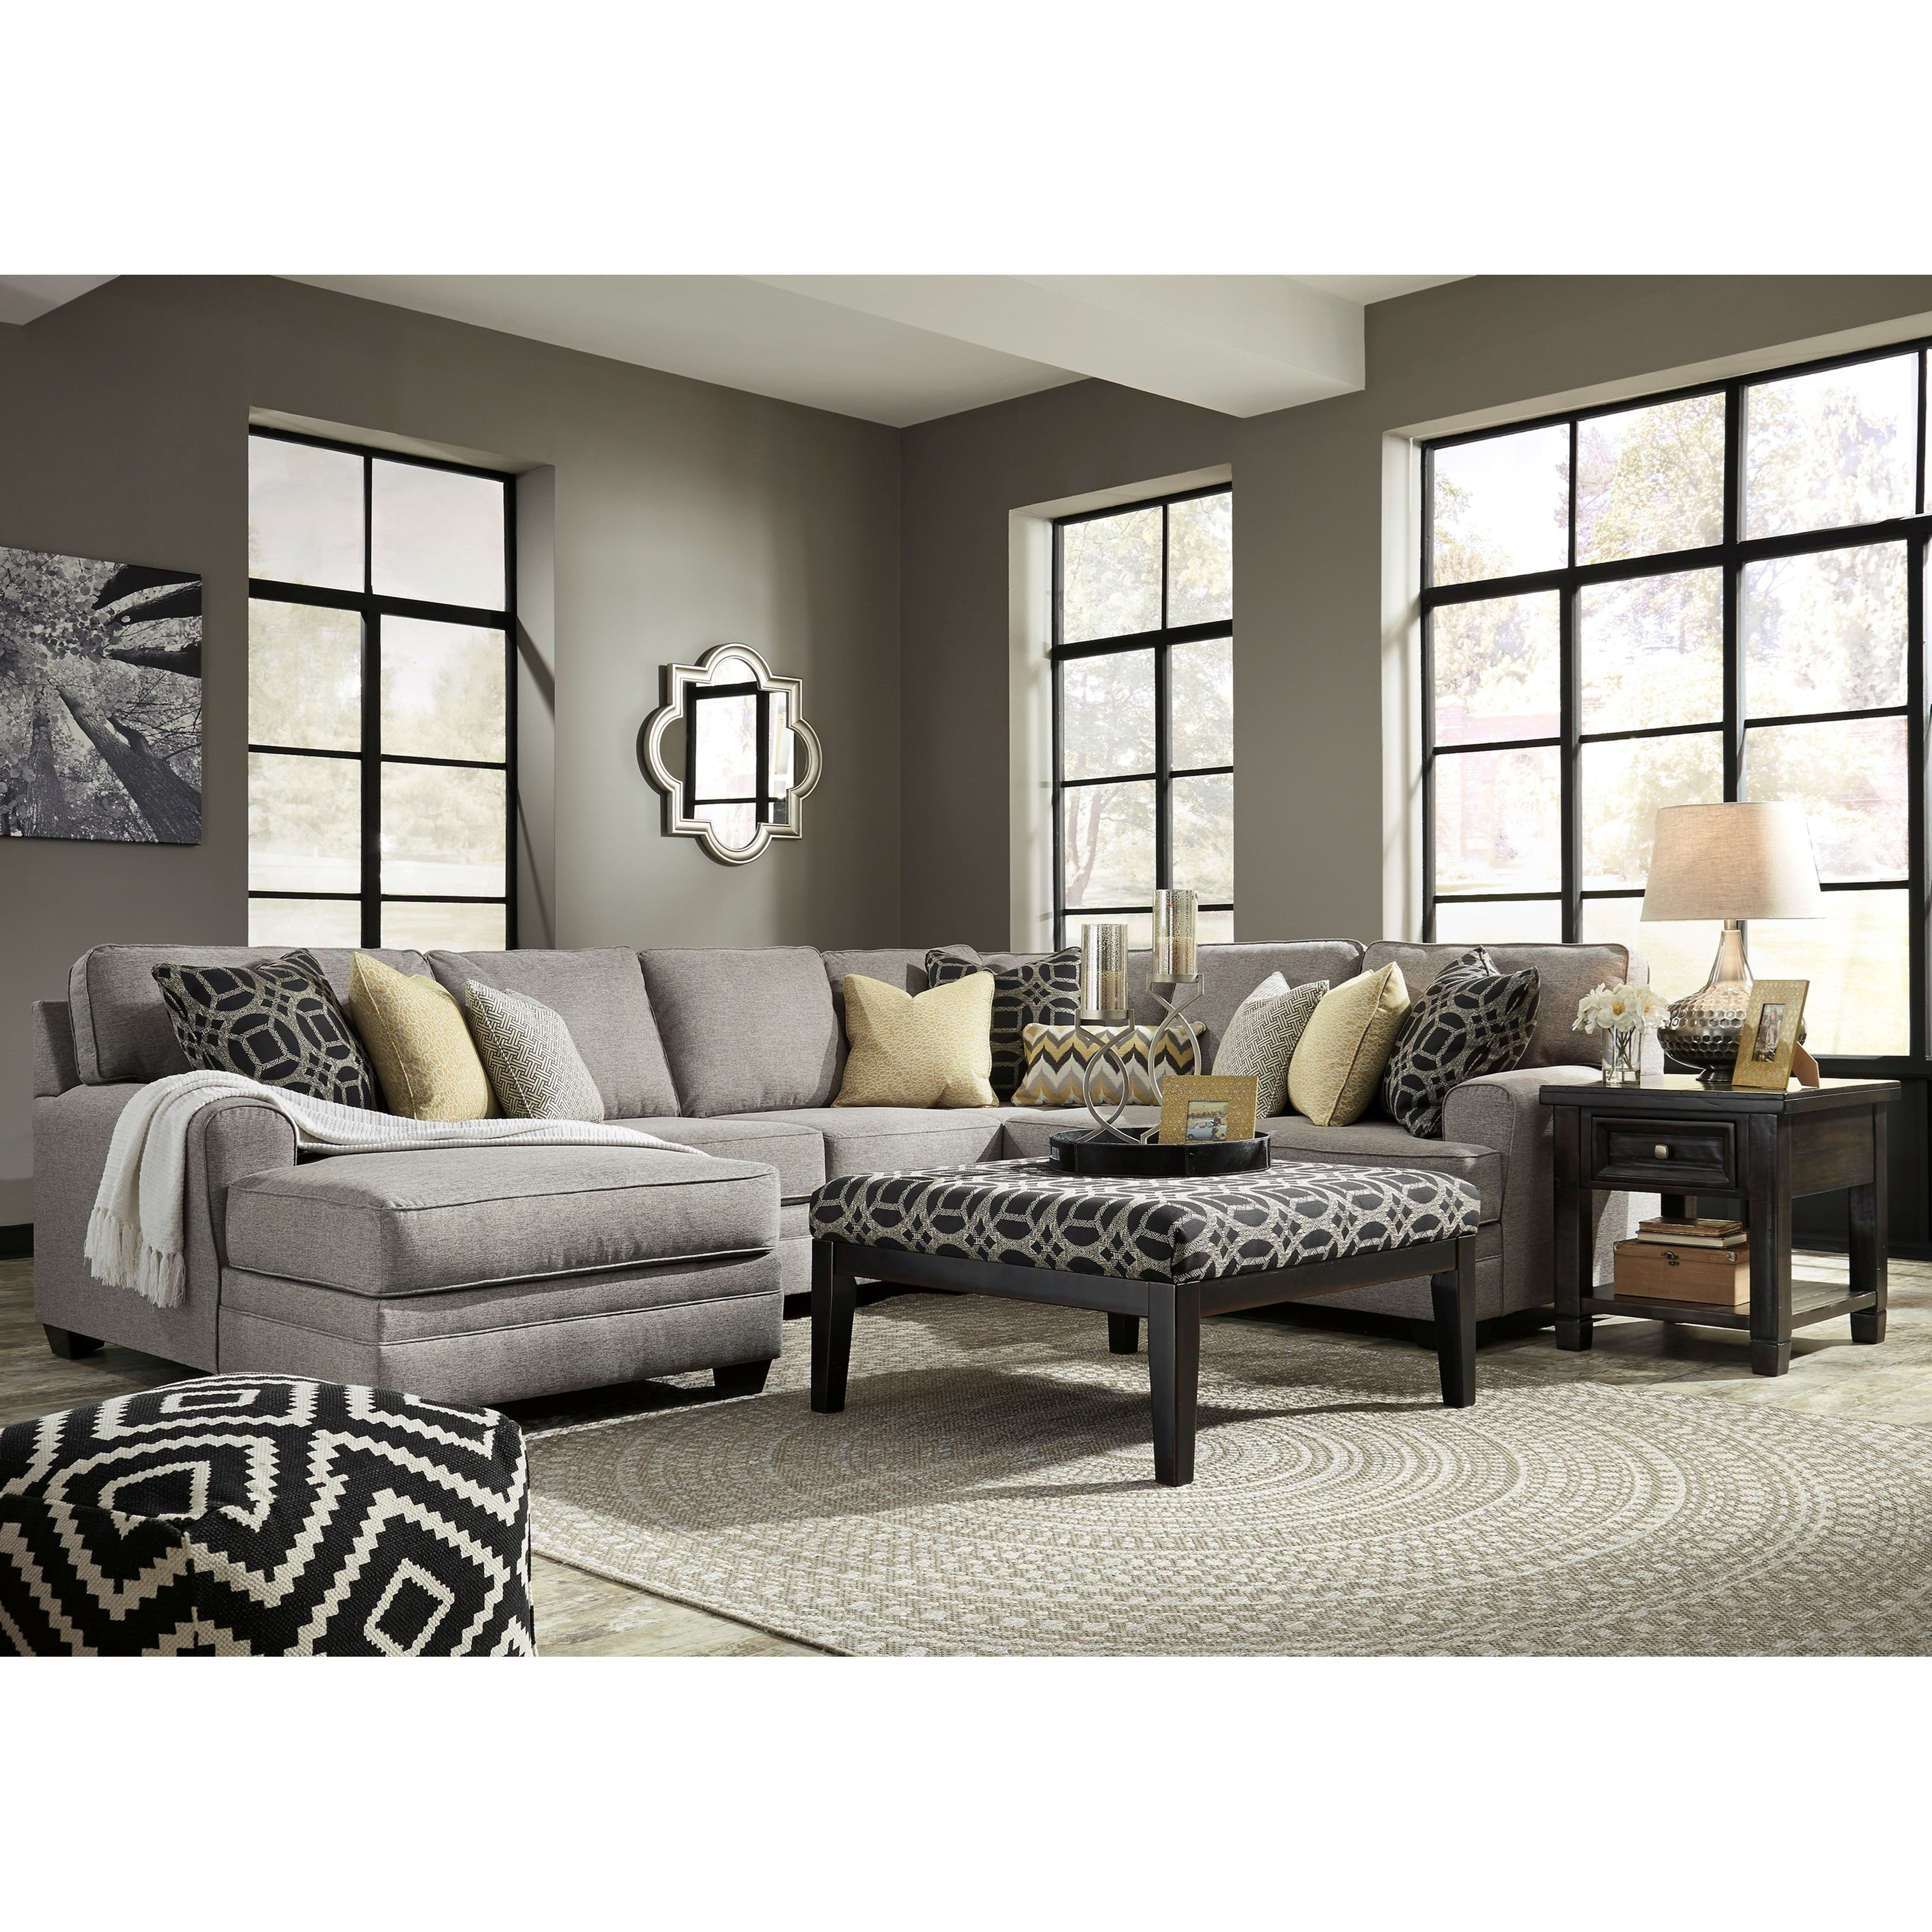 Benchcraft Cresson Stationary Living Room Group - Item Number: 54907 Living Room Group 1